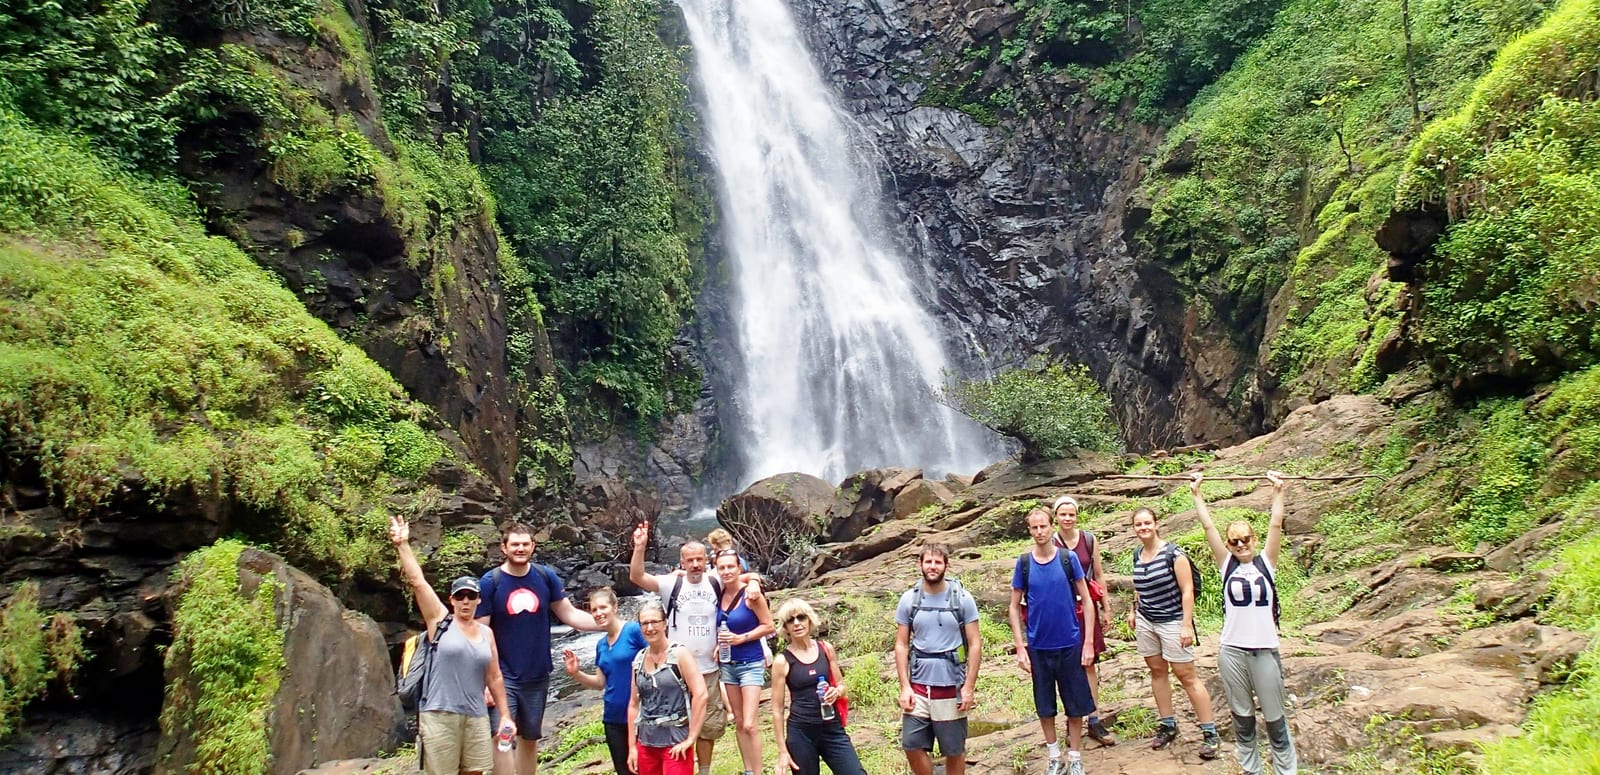 Trek to The Todo Waterfall - When in Goa With Friends, This is What You Should Do